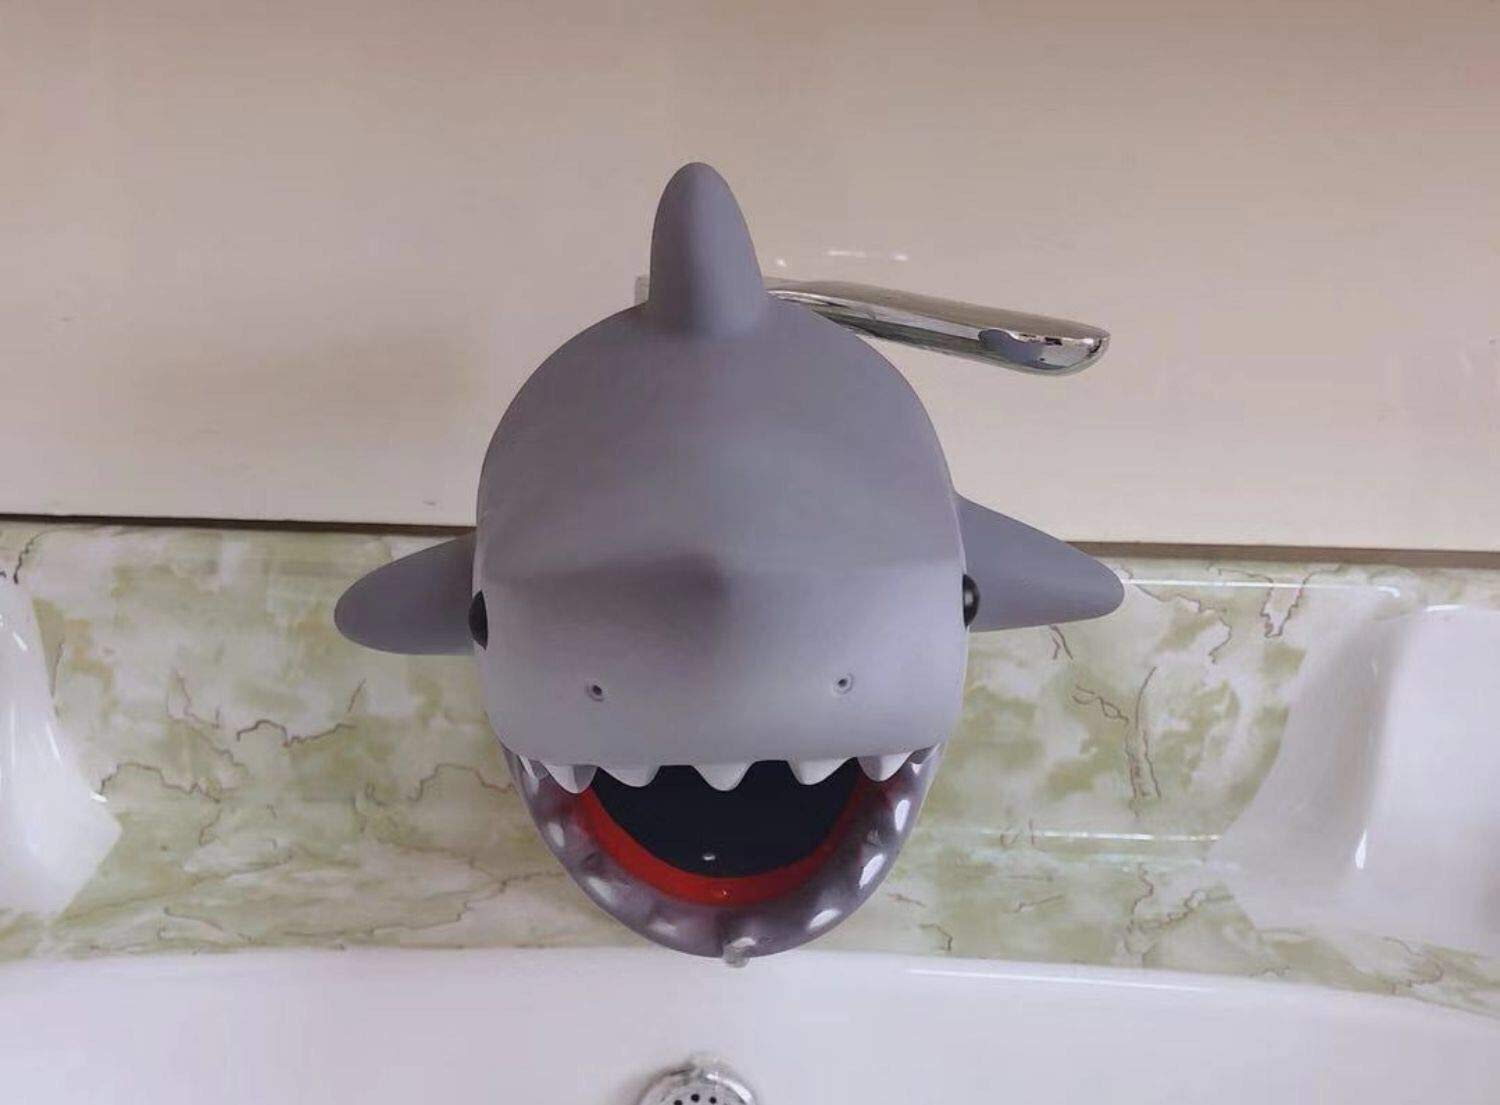 Jian Jing Bathroom Sink Spout Cover - Grey Shark Bathroom Faucet Cover for Kid - Faucet Extender Protector for Baby - Silicone Soft Spout Cover Baby - Child Bathroom Cute Accessories by Generic